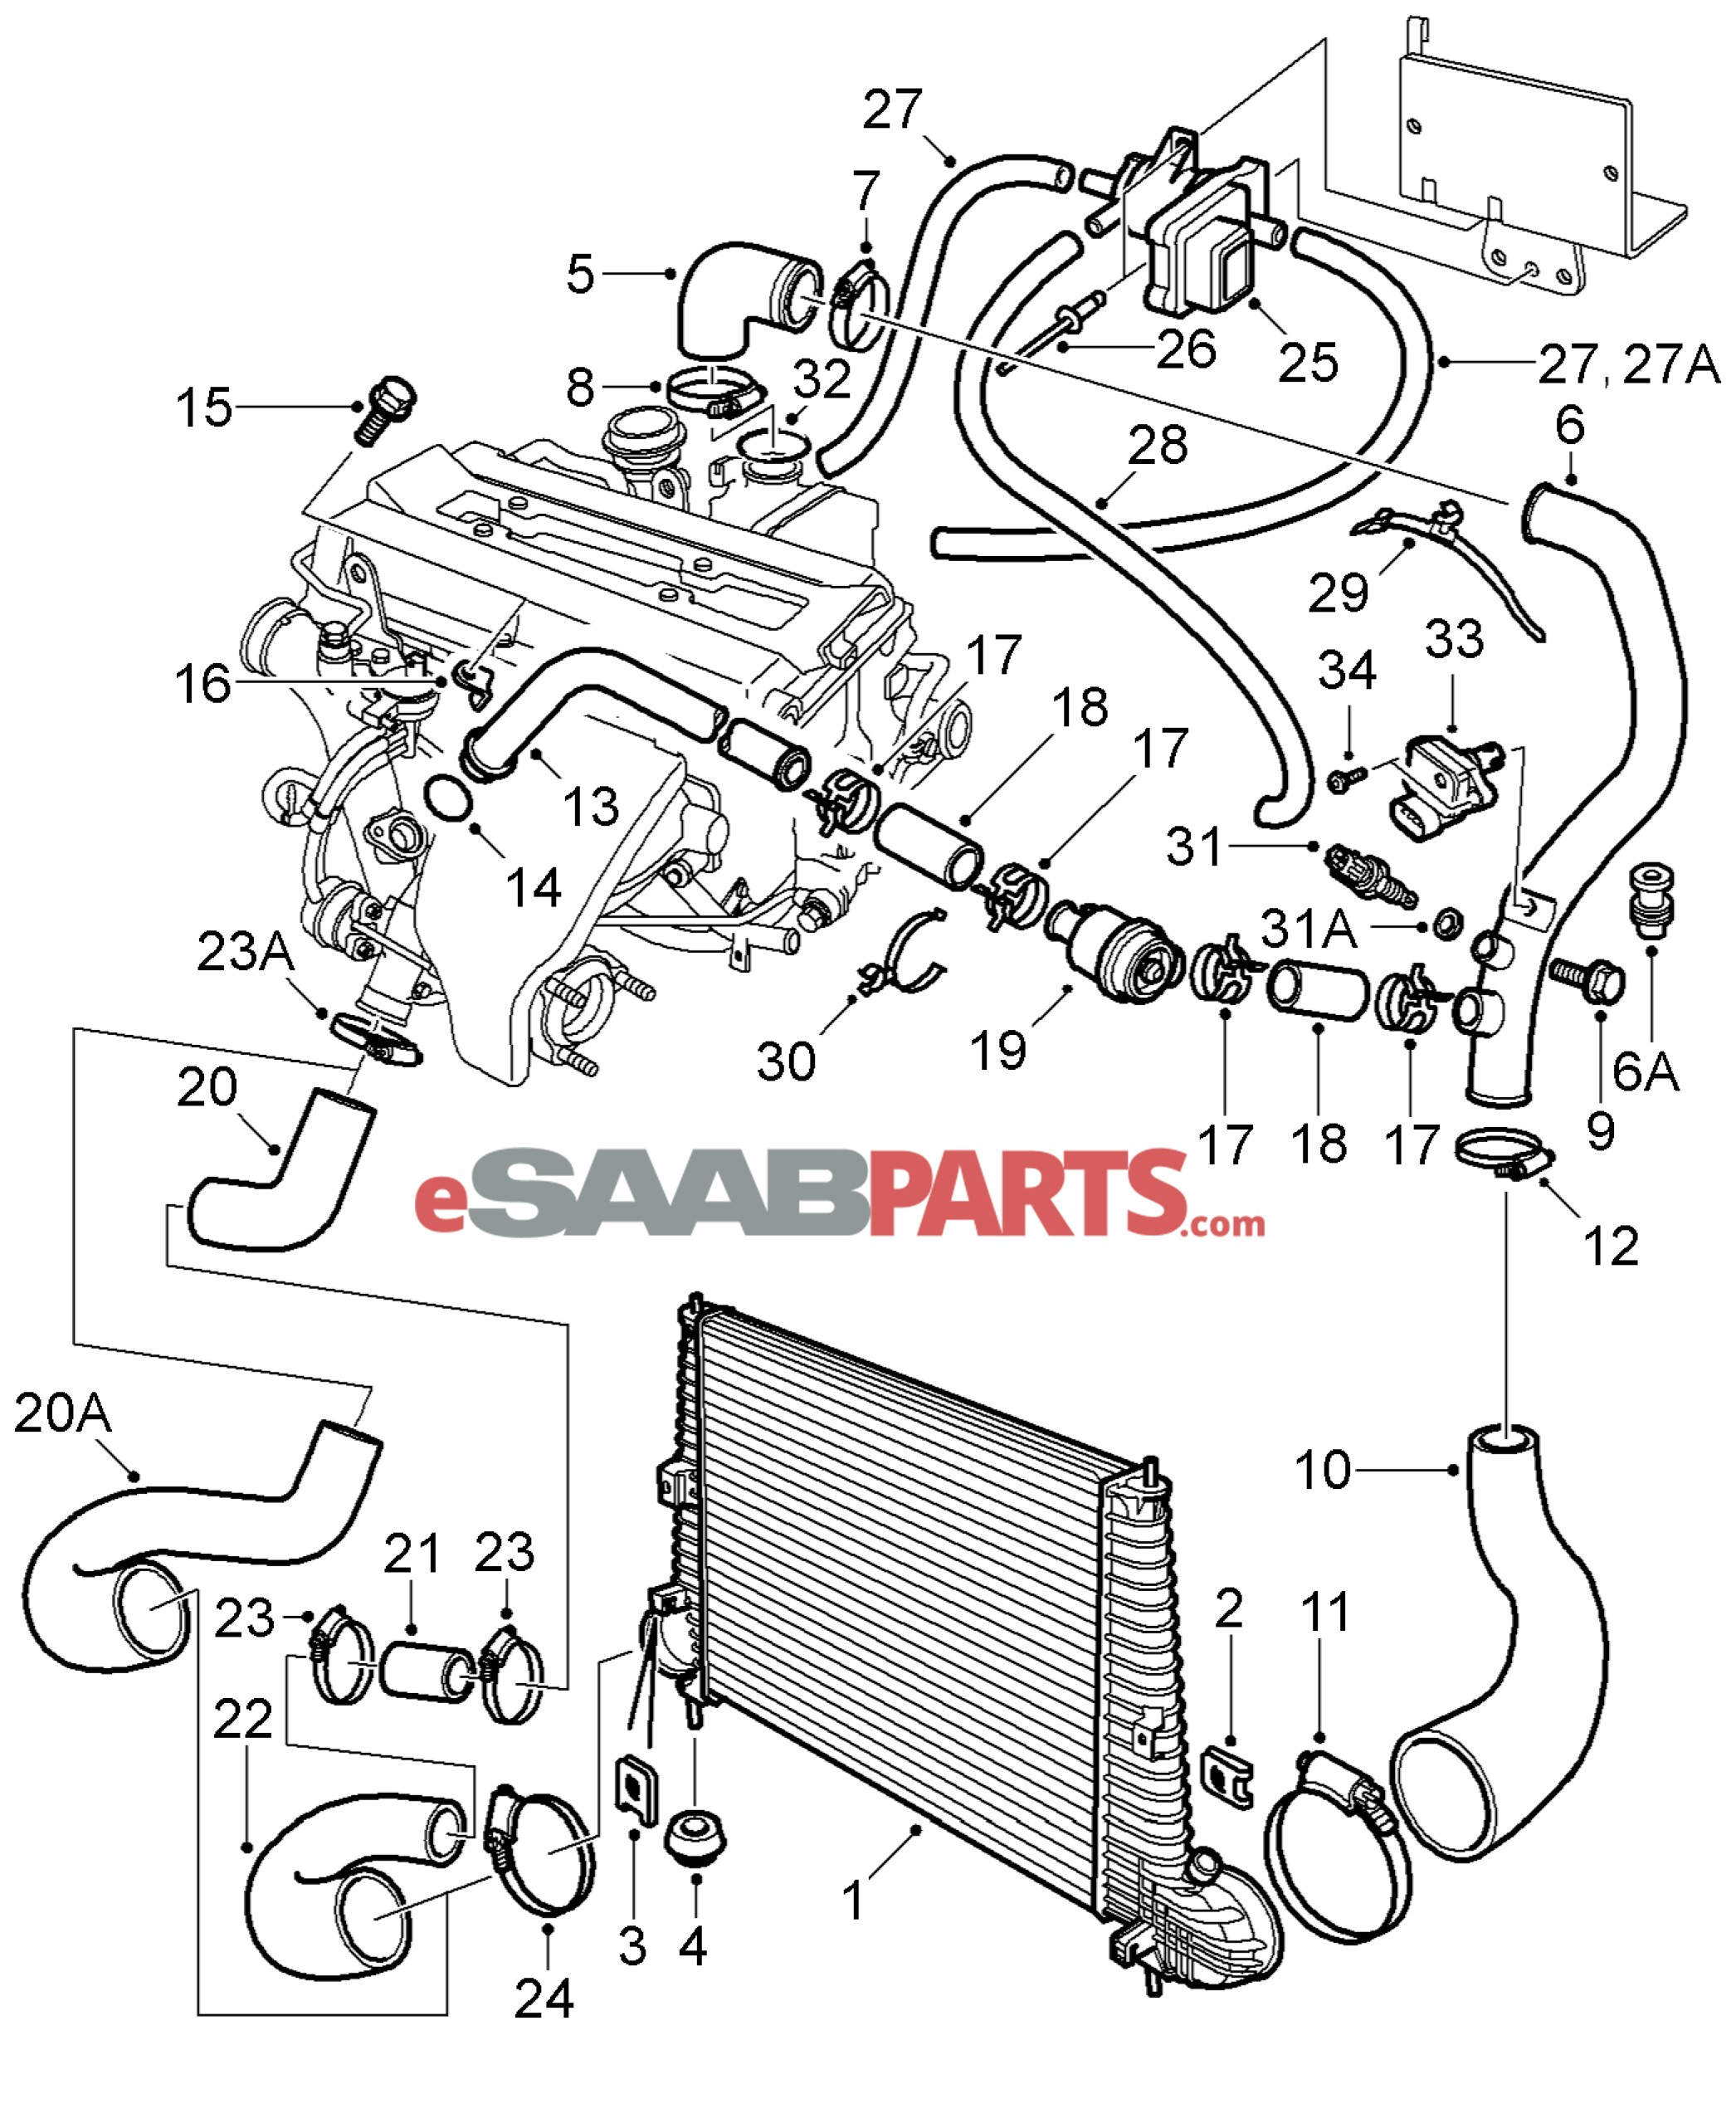 1993 saab 9 3 engine diagram